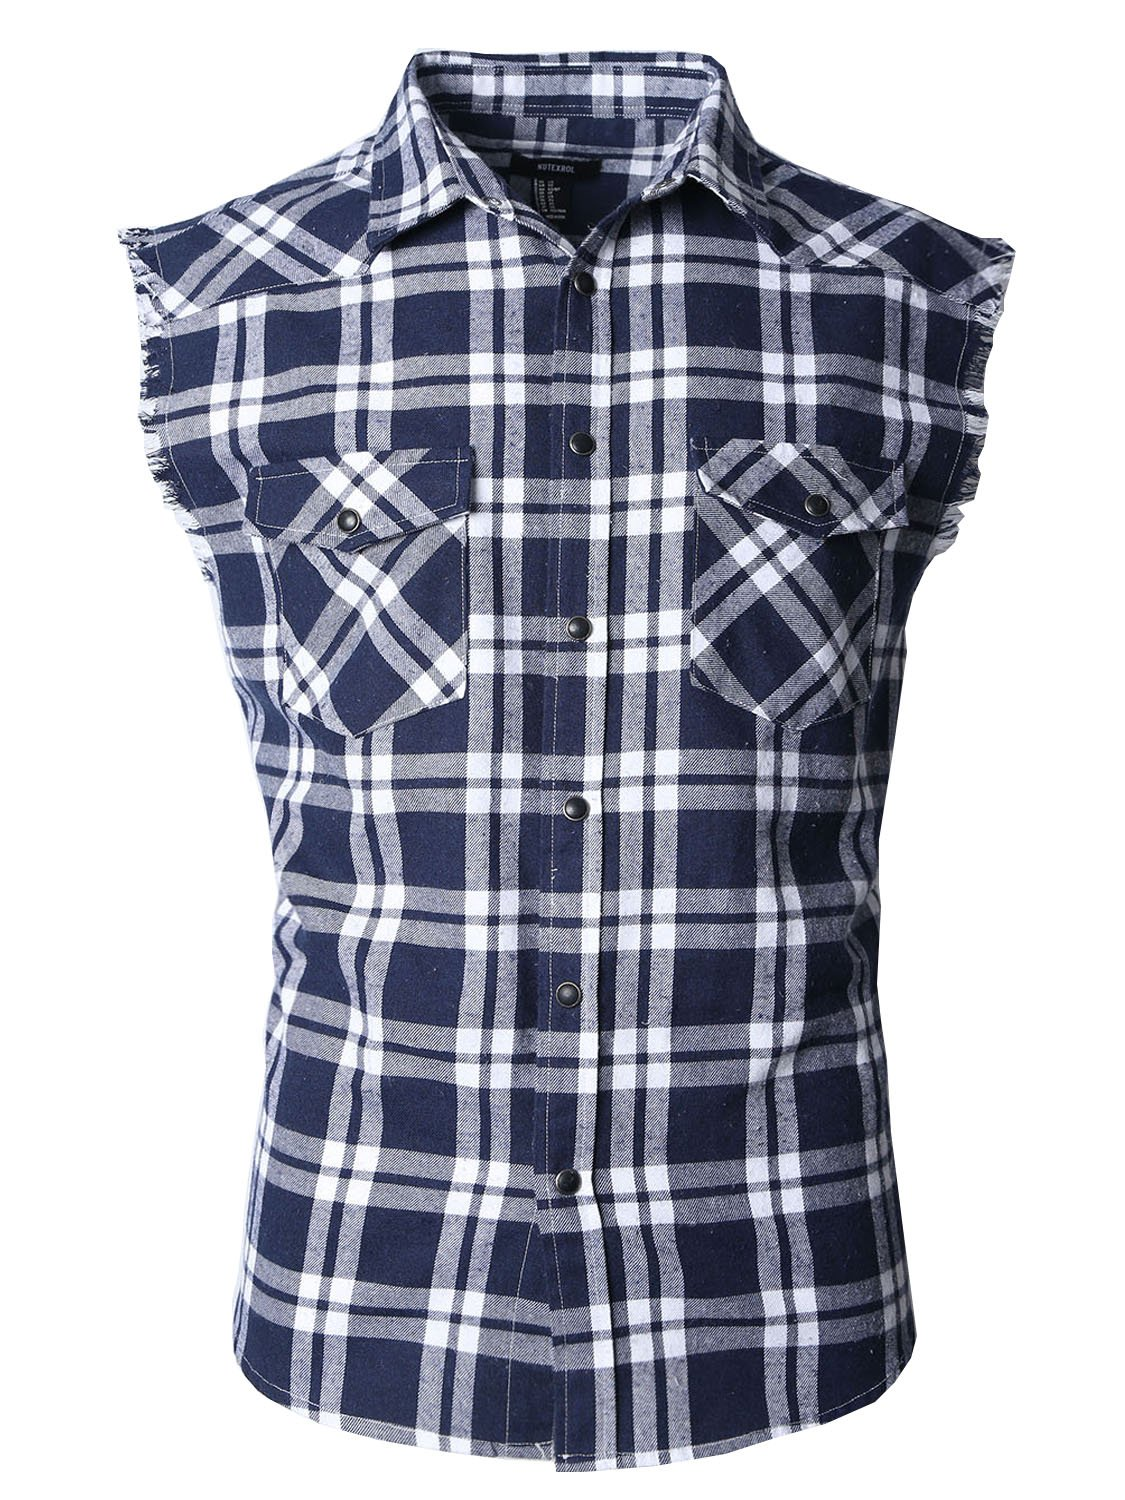 NUTEXROL Men's Casual Flannel Plaid Shirt Sleeveless Cotton Plus Size Vest Navy&White M by NUTEXROL